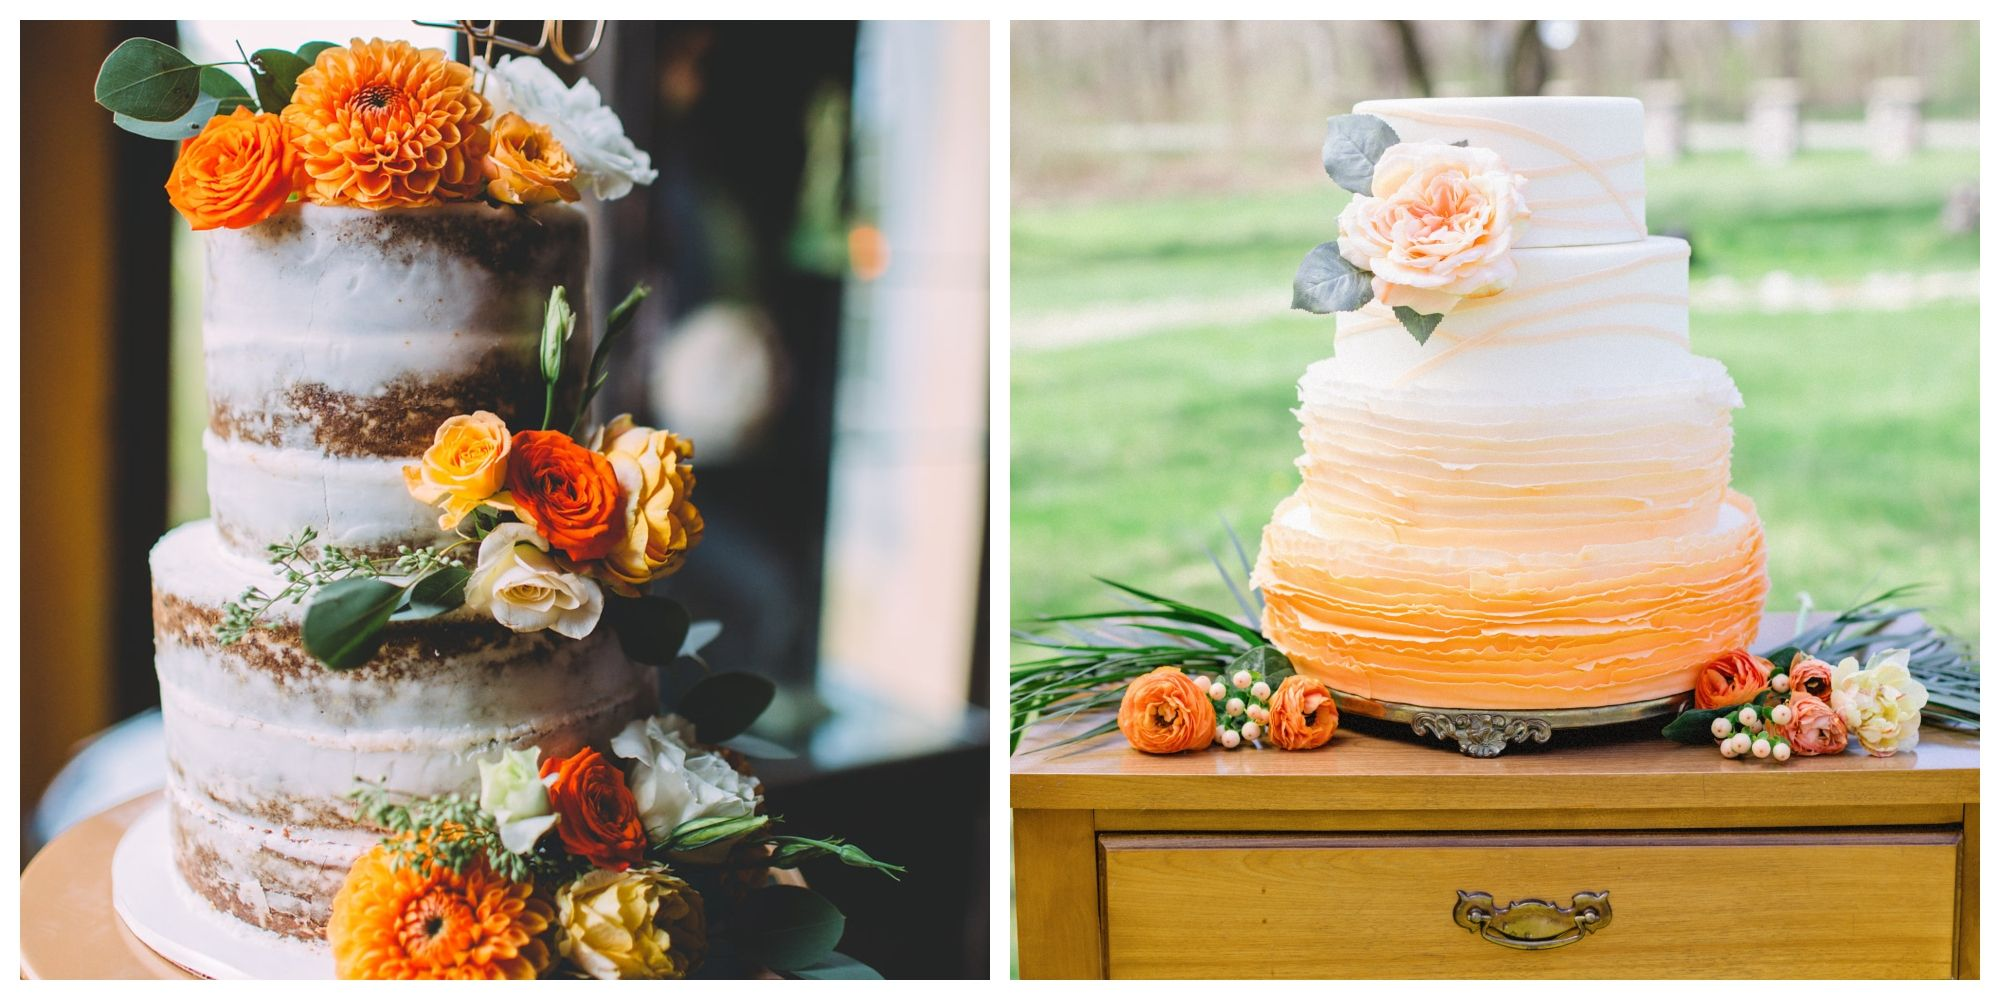 diy fall wedding cakes country amp diy wedding ideas decorations and projects for 13607